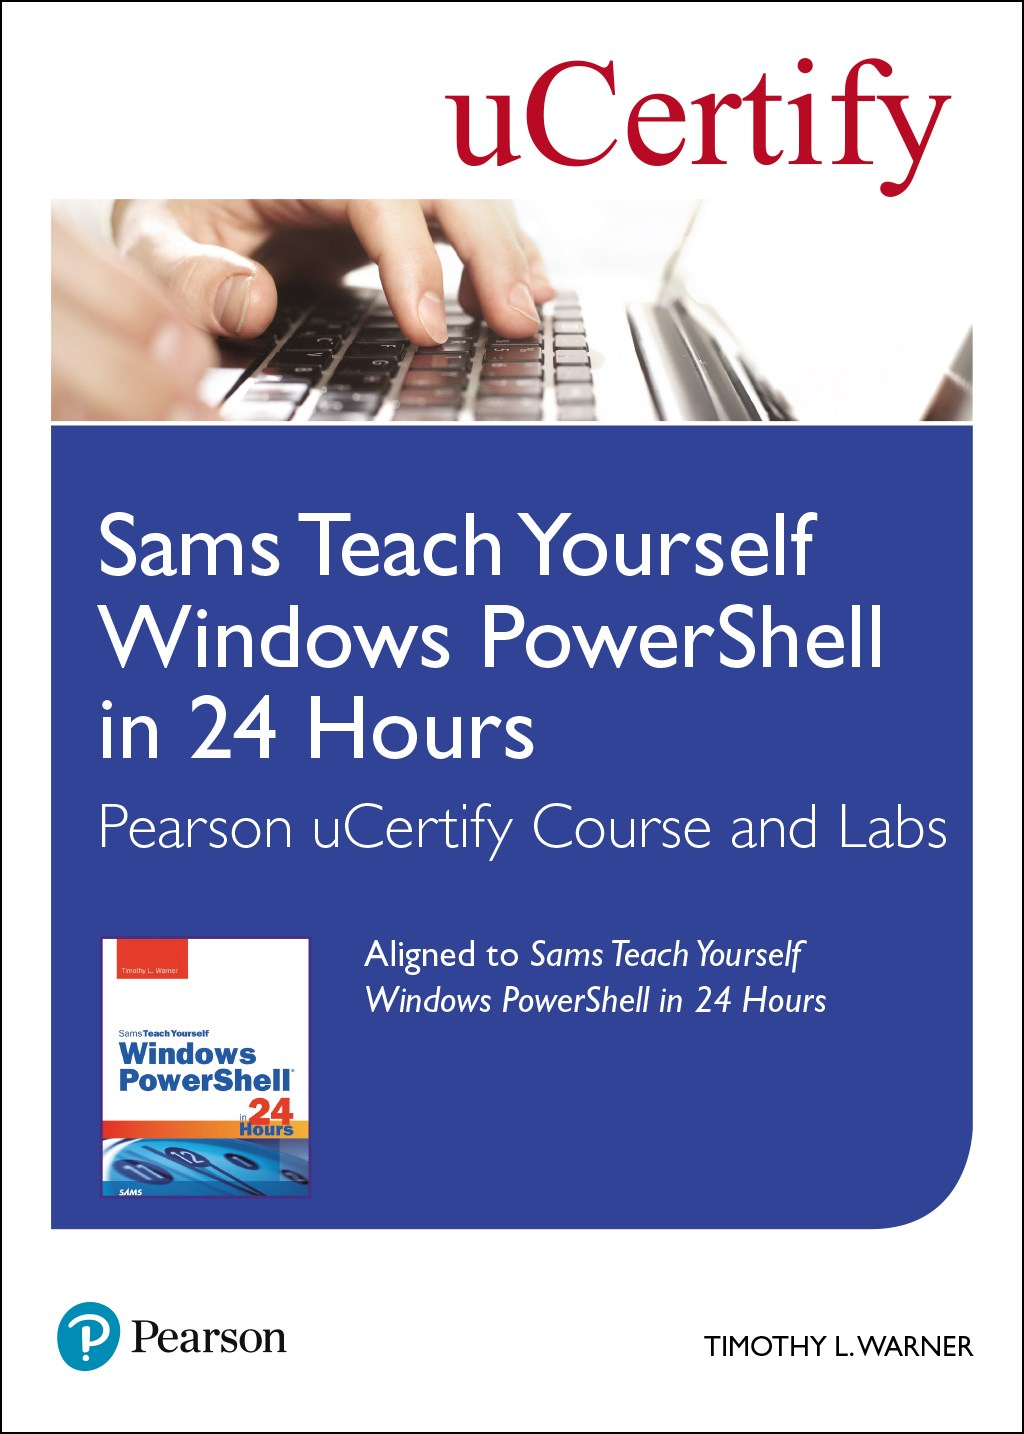 Sams Teach Yourself Windows PowerShell in 24 Hours Pearson uCertify Course and Labs